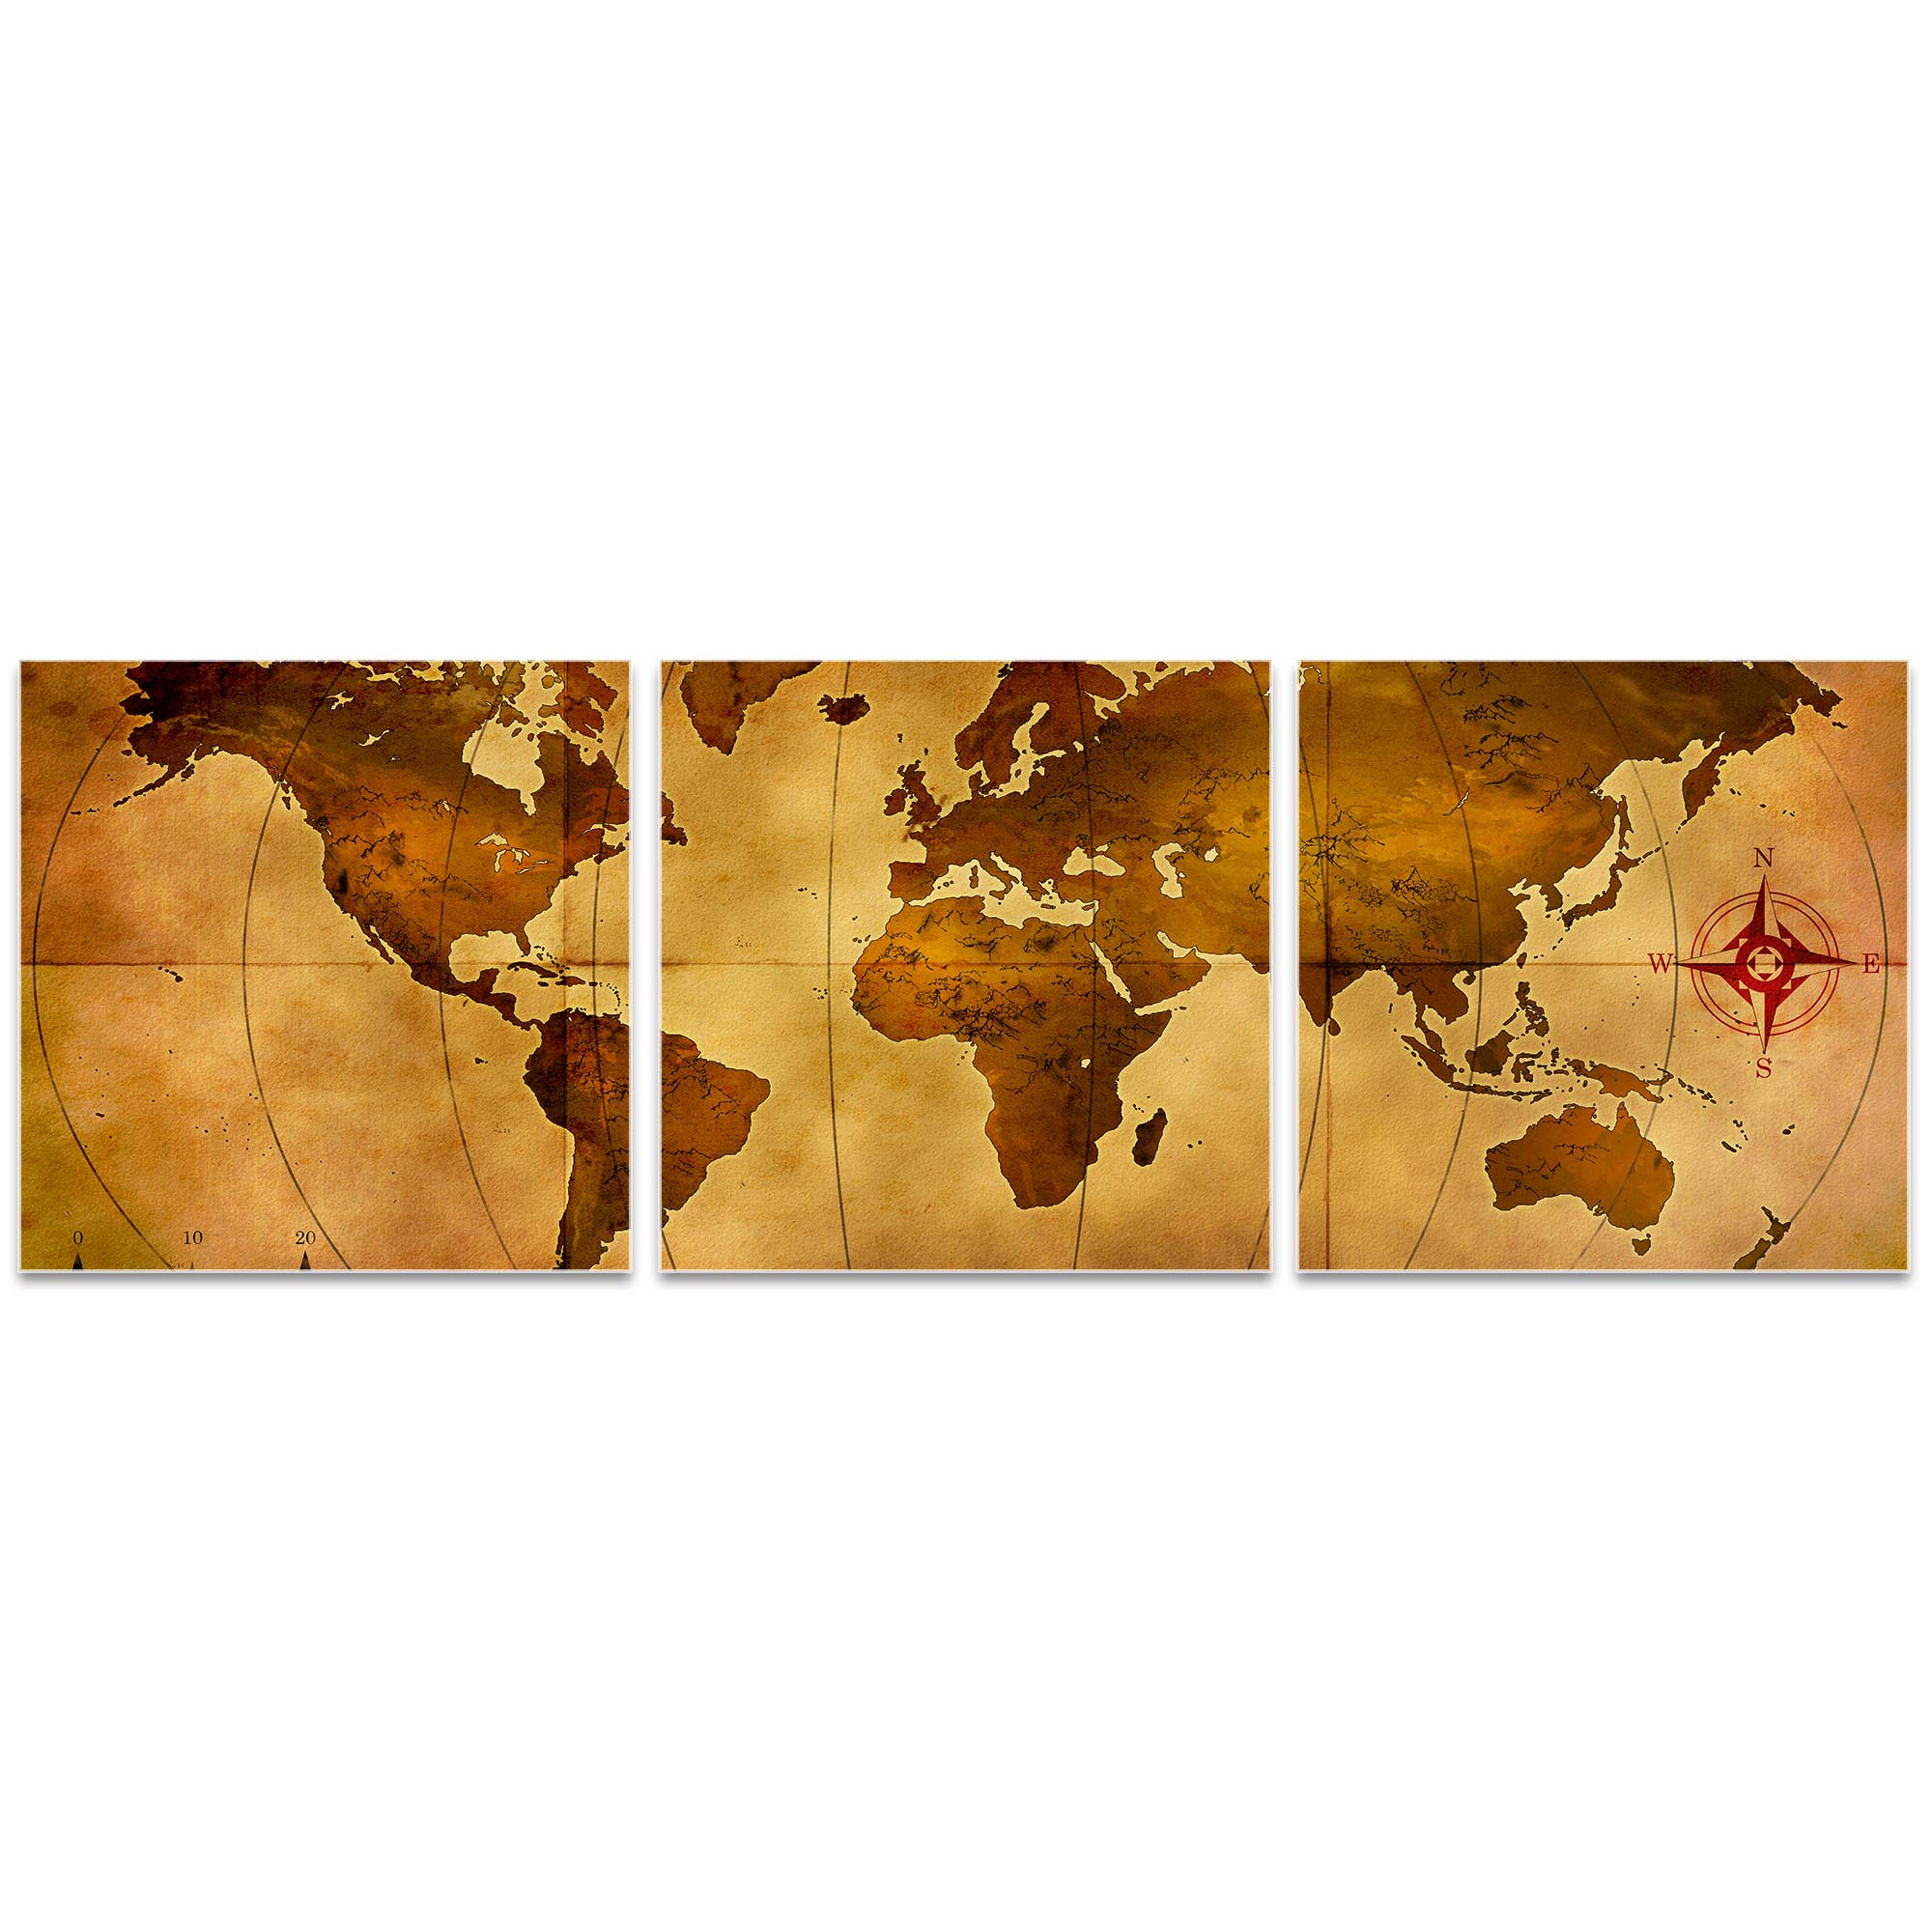 Old World Map Triptych 38x12in. Metal or Acrylic Colonial Decor - Image 2